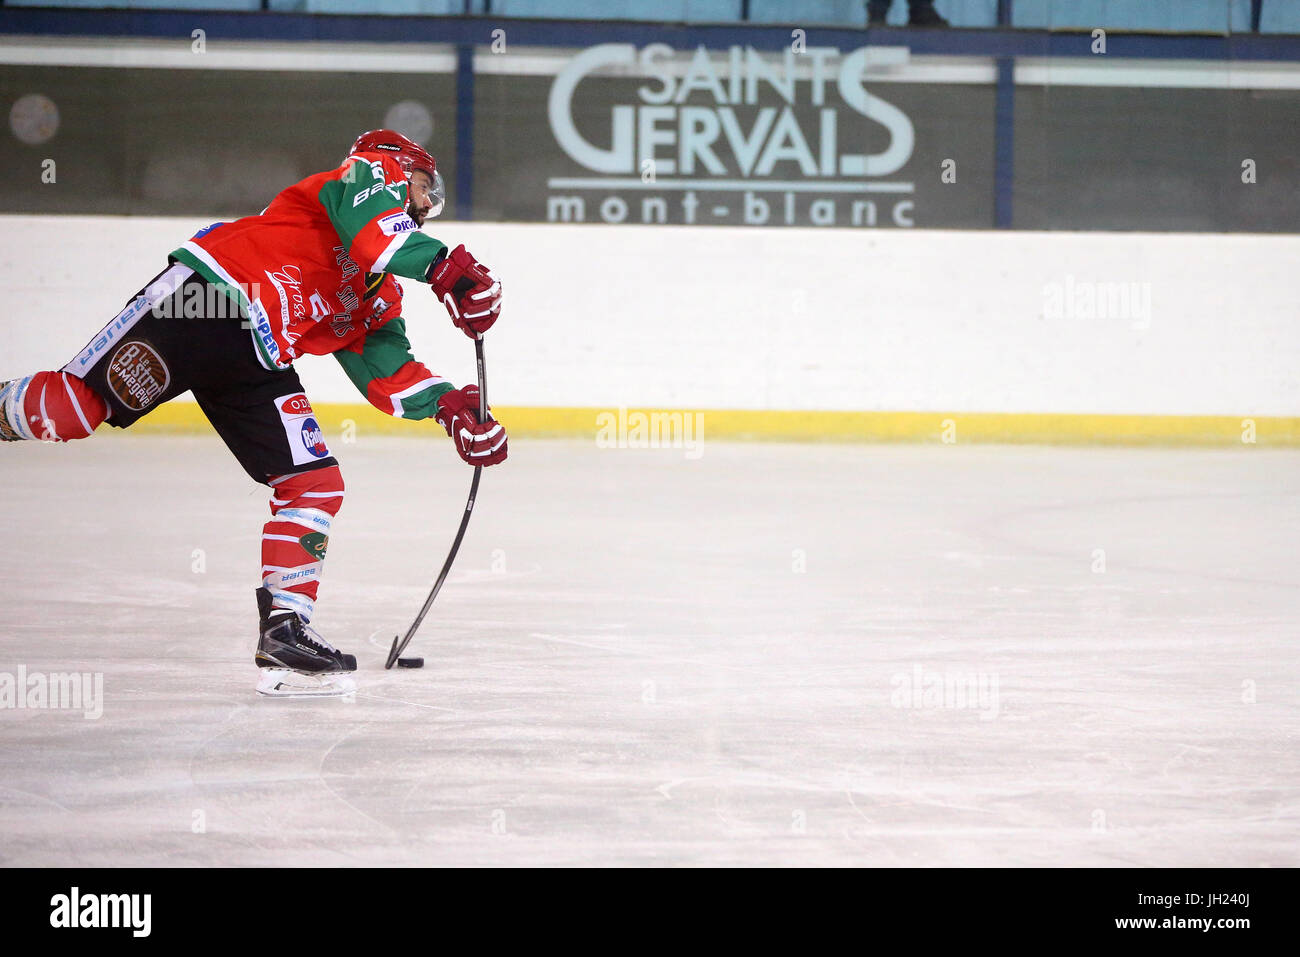 Ice Hockey match.  Player in action. France. - Stock Image